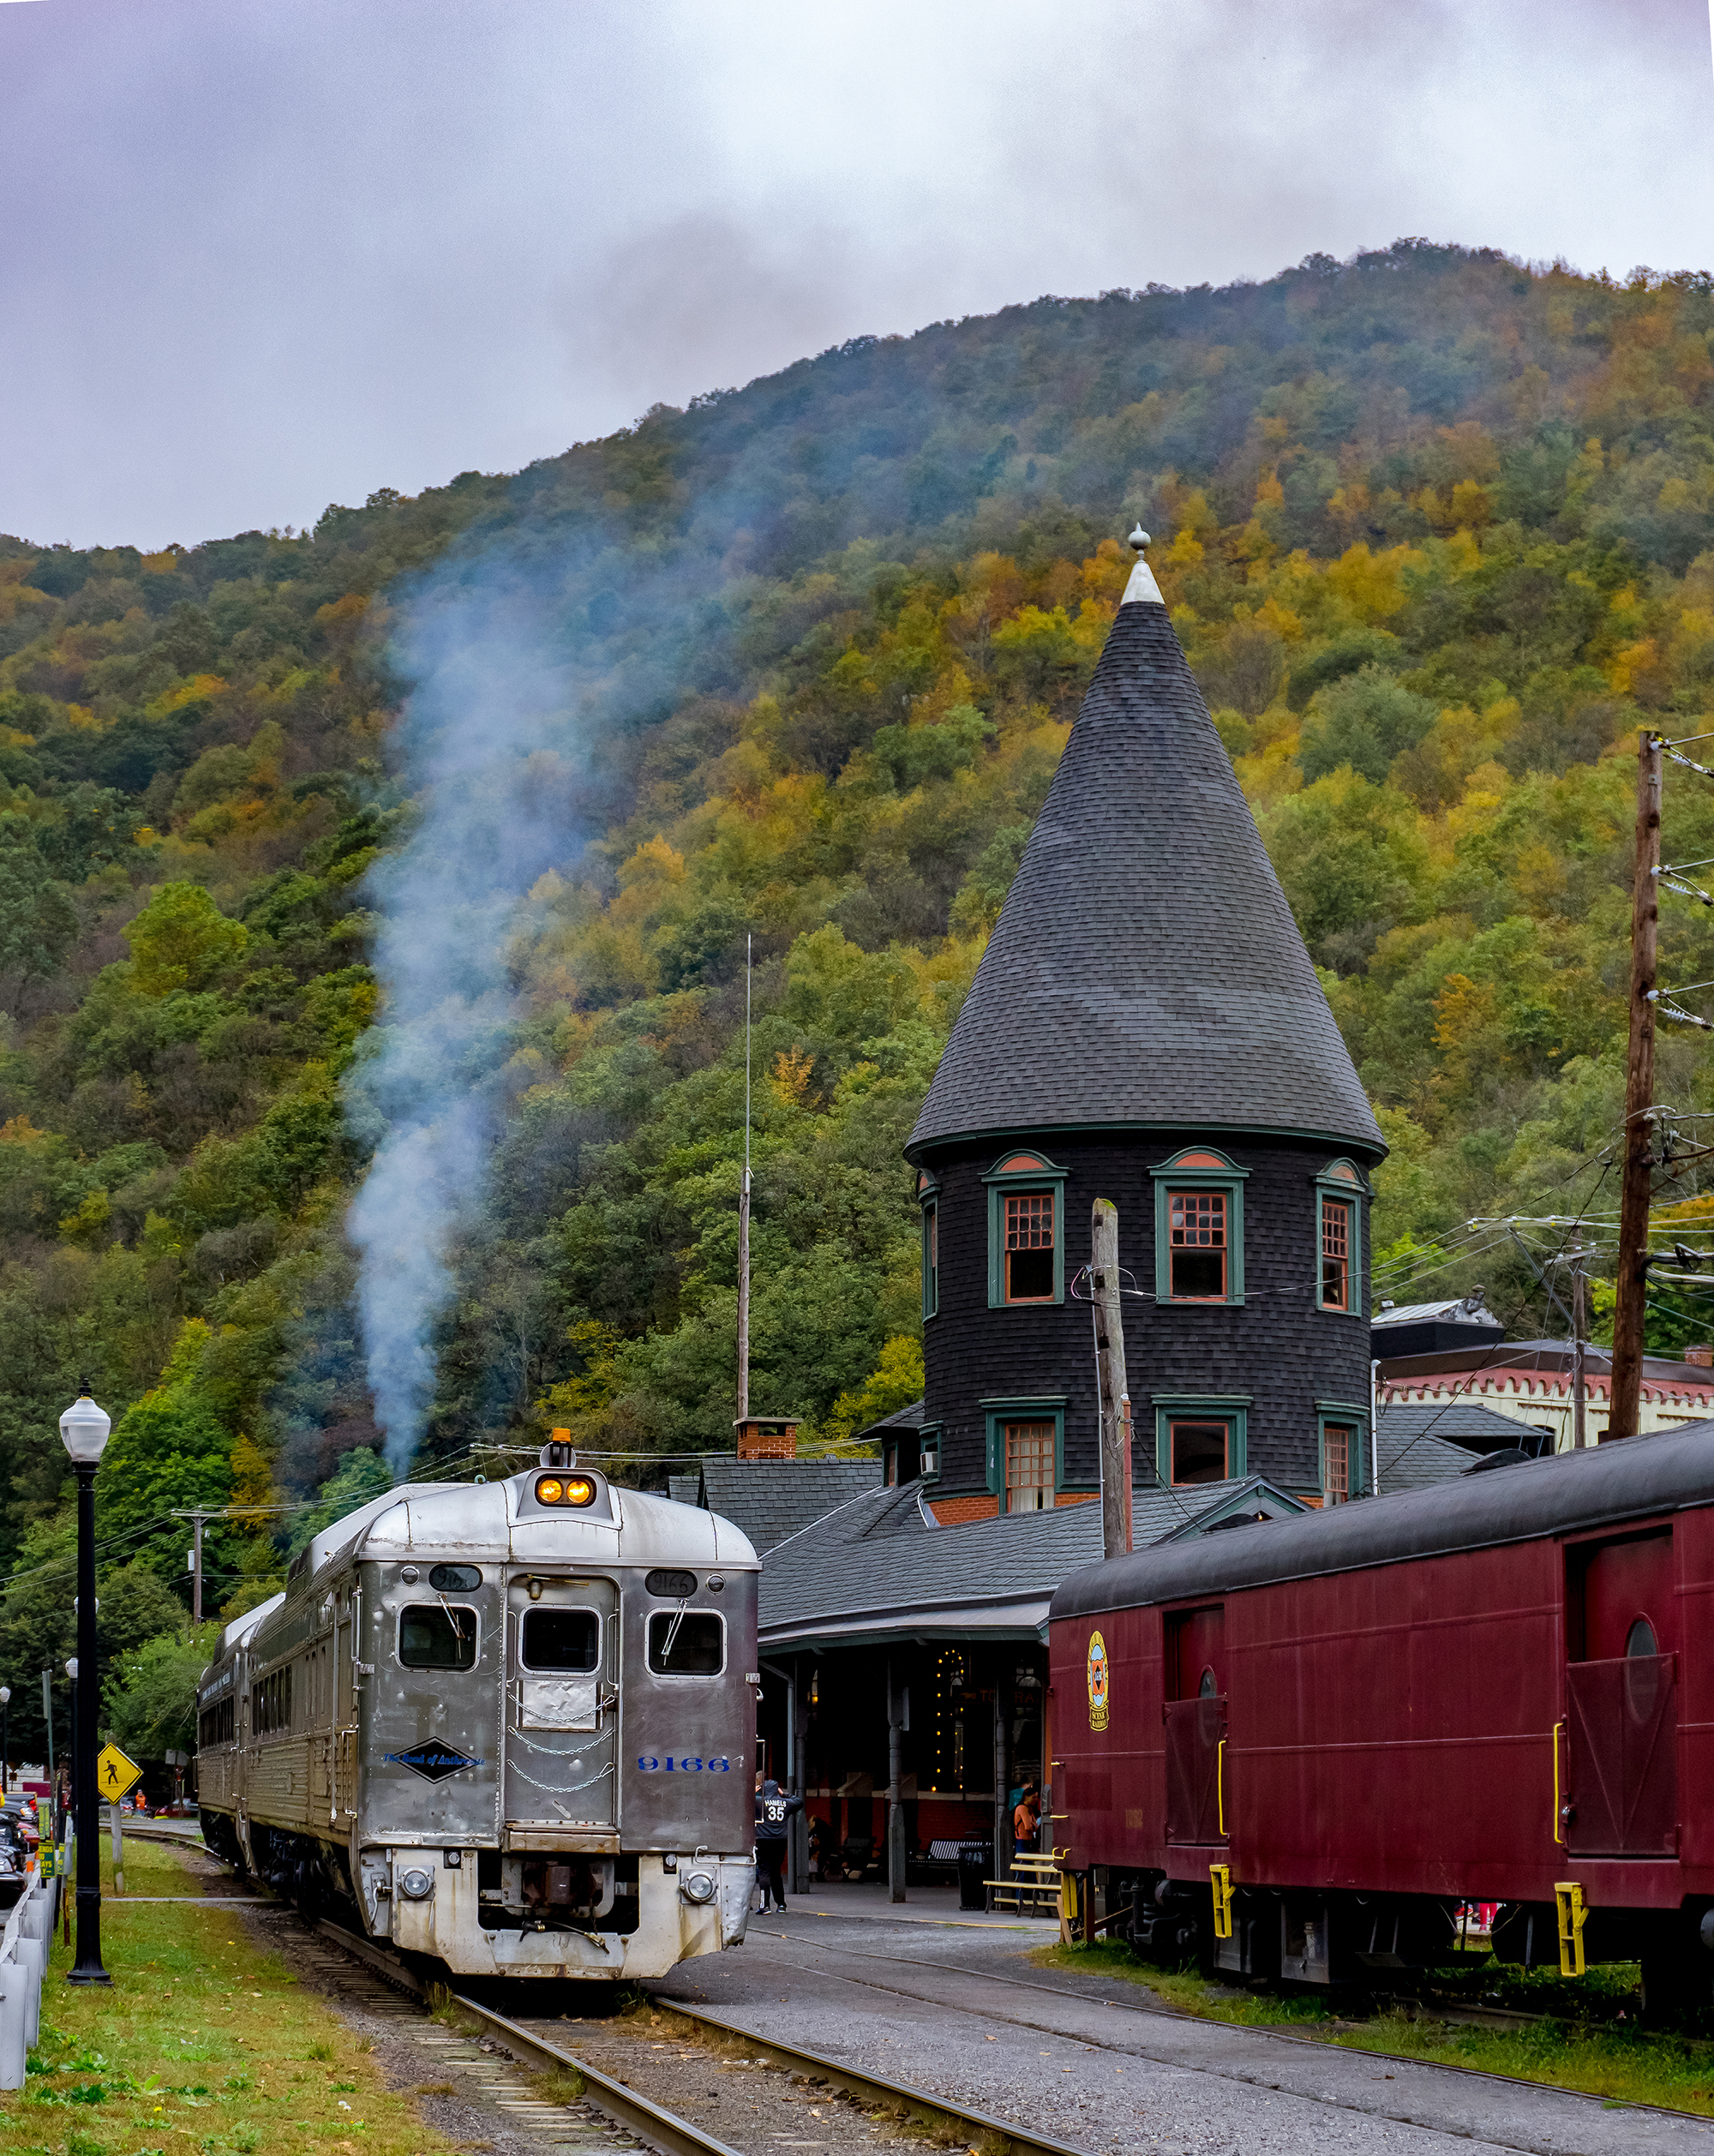 Weekend Getaway ... Jim Thorpe - Featured Article - Looking for a place to getaway here in PA? Head to Jim Thorpe at the foothills of the Poconos and discover this unique small town nicknamed the